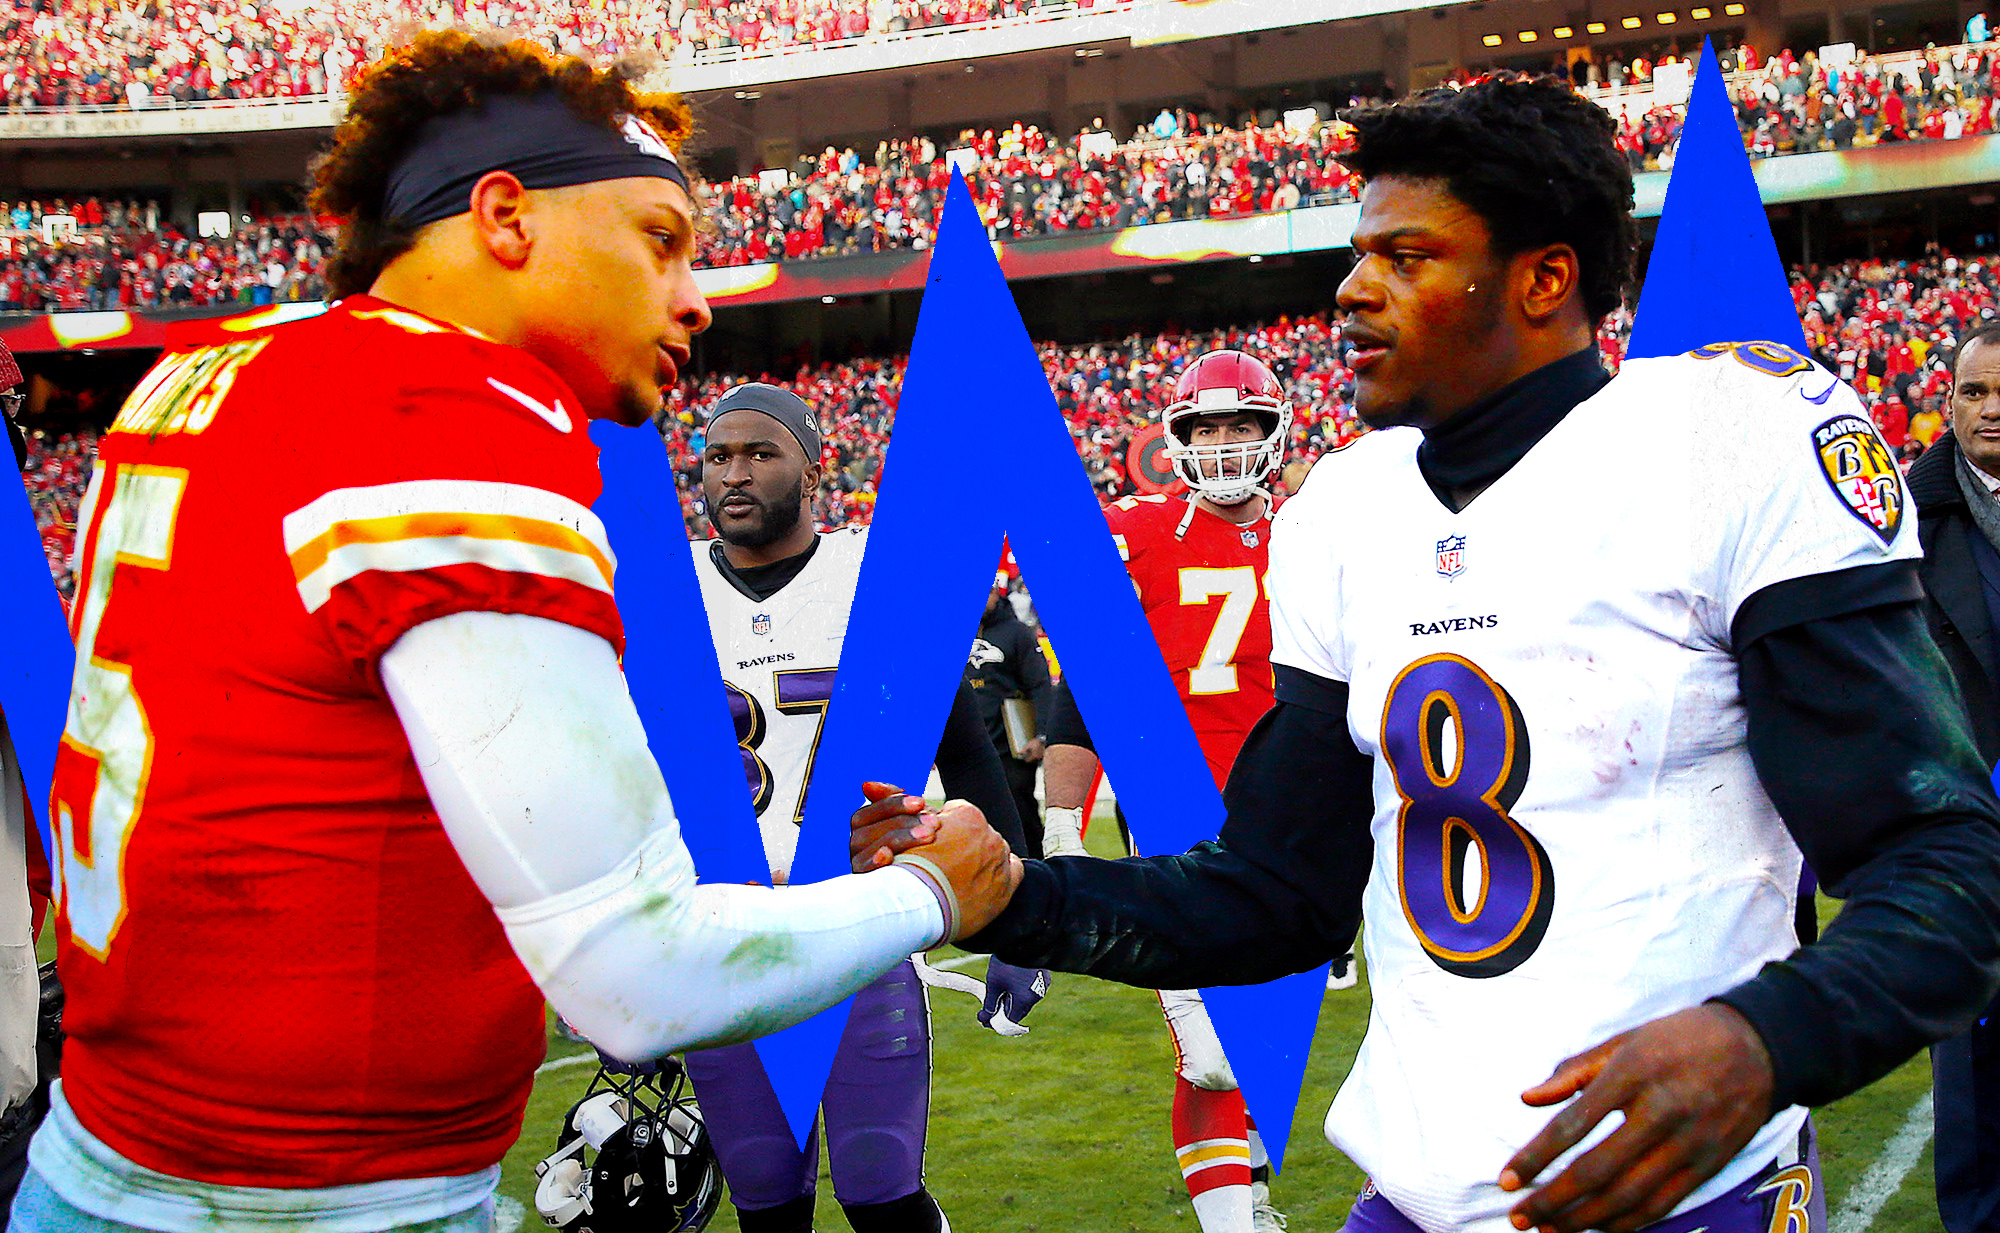 QBs Patrick Mahomes and Lamar Jackson shake hands after a Chiefs-Ravens game